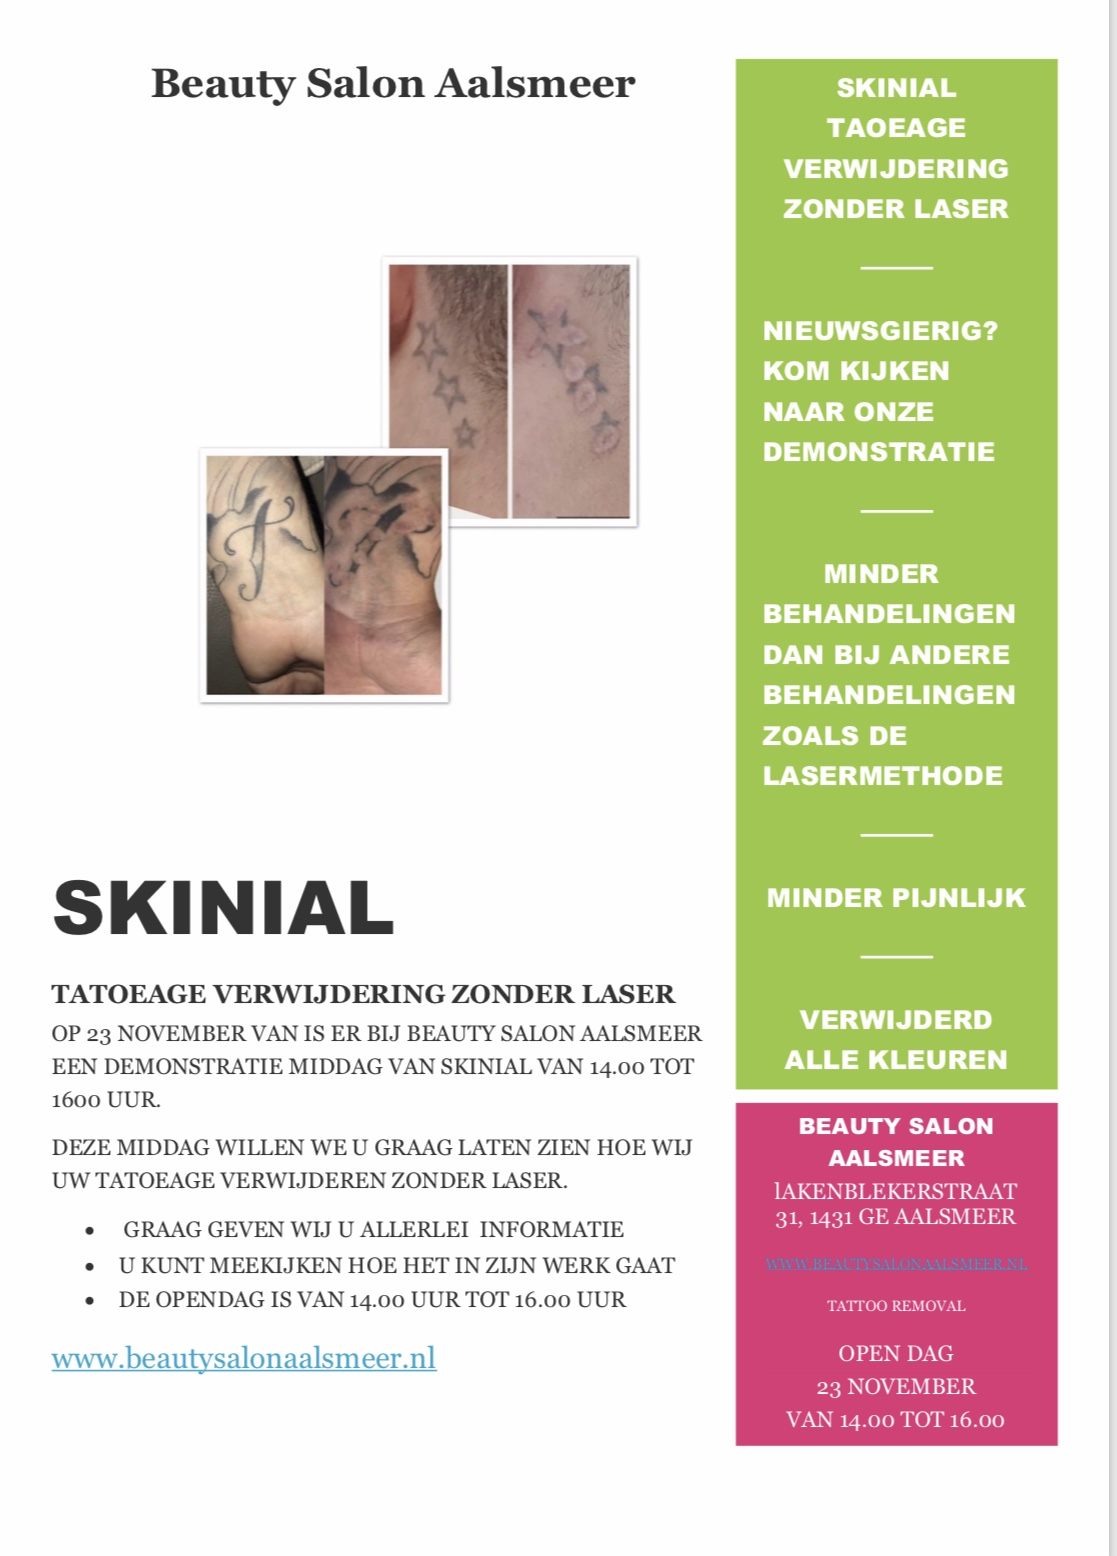 Skinial tattoo removal